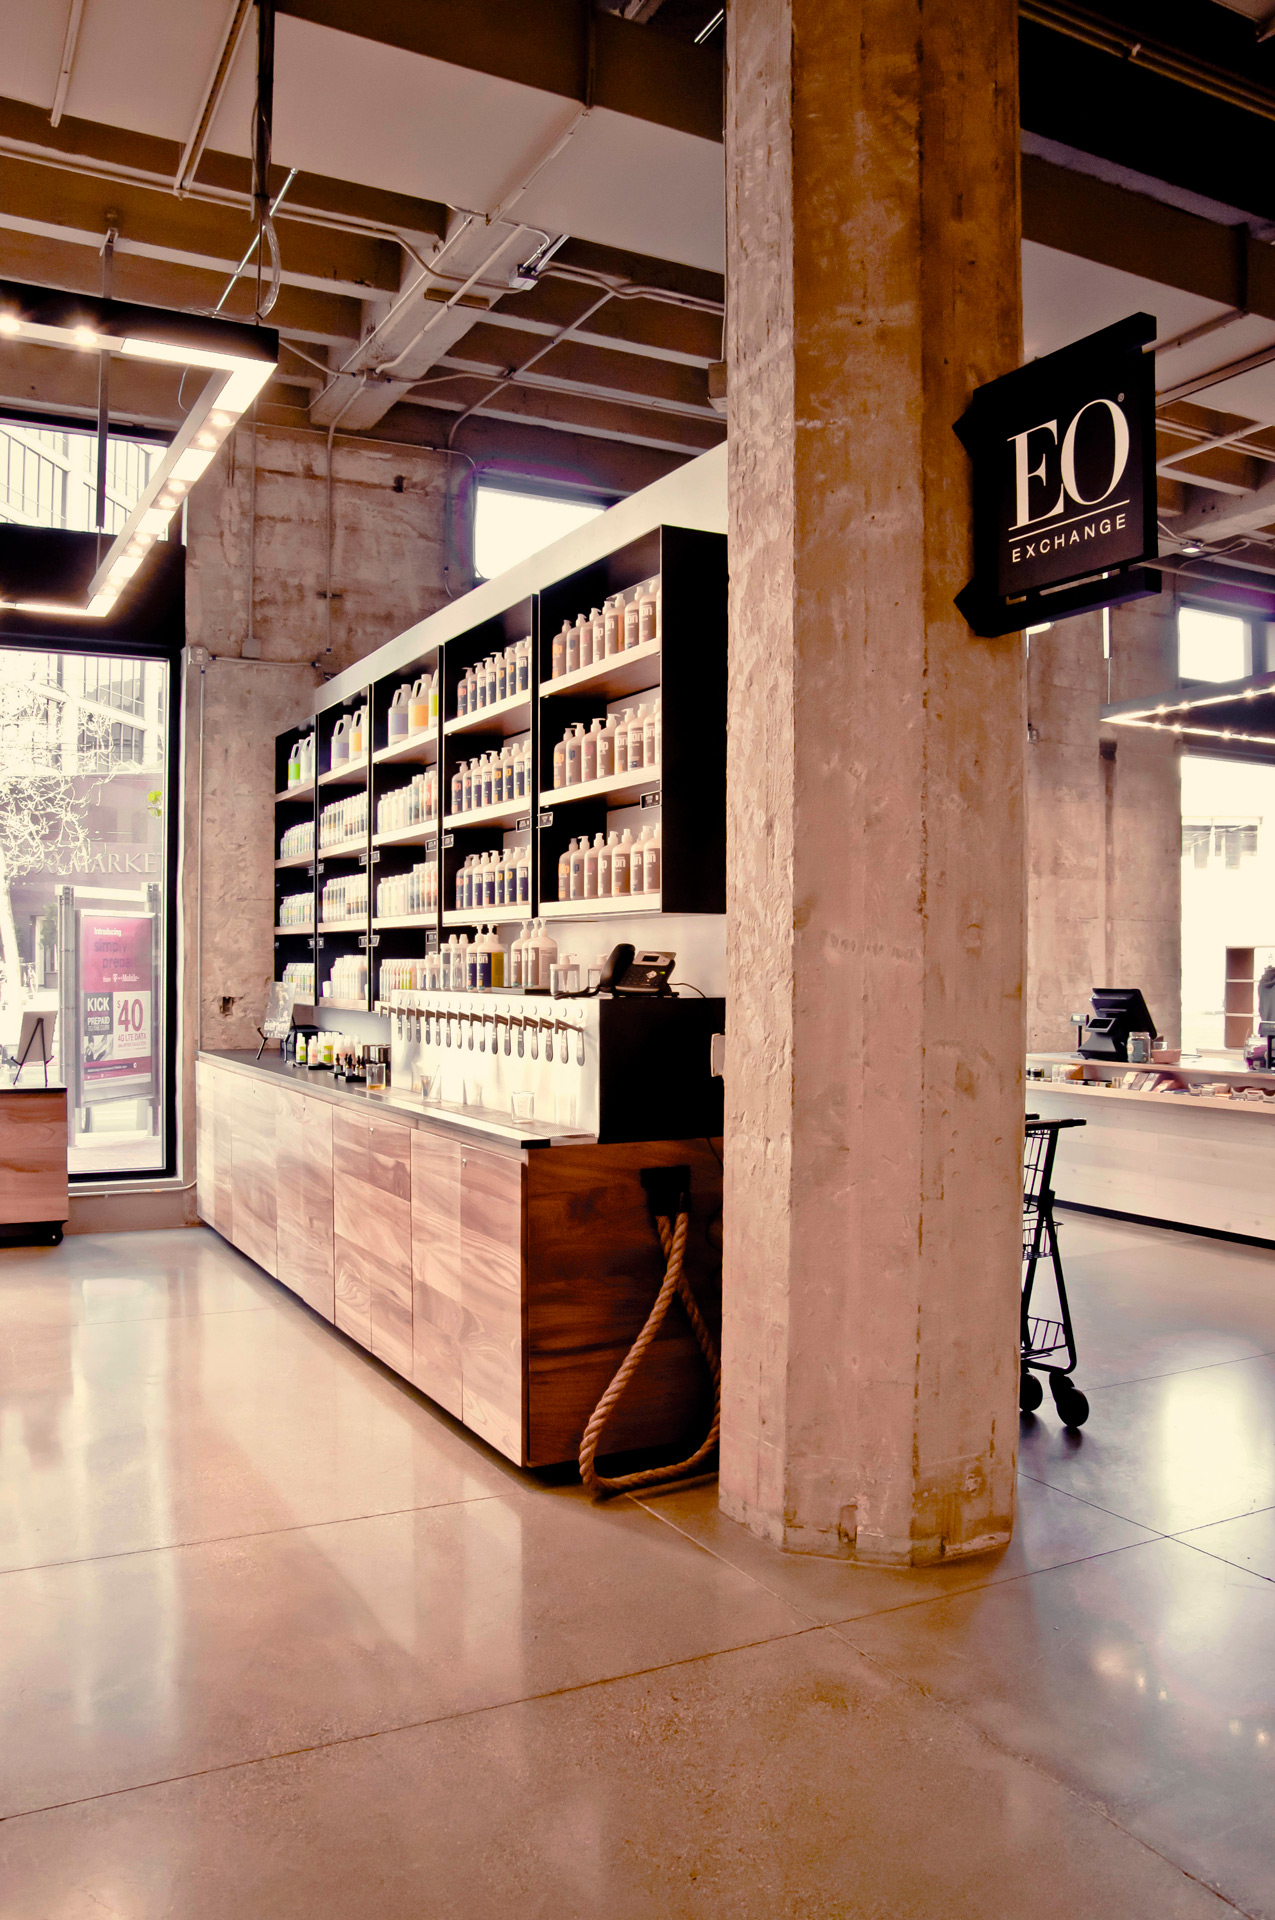 EO at the Market retail store interiors